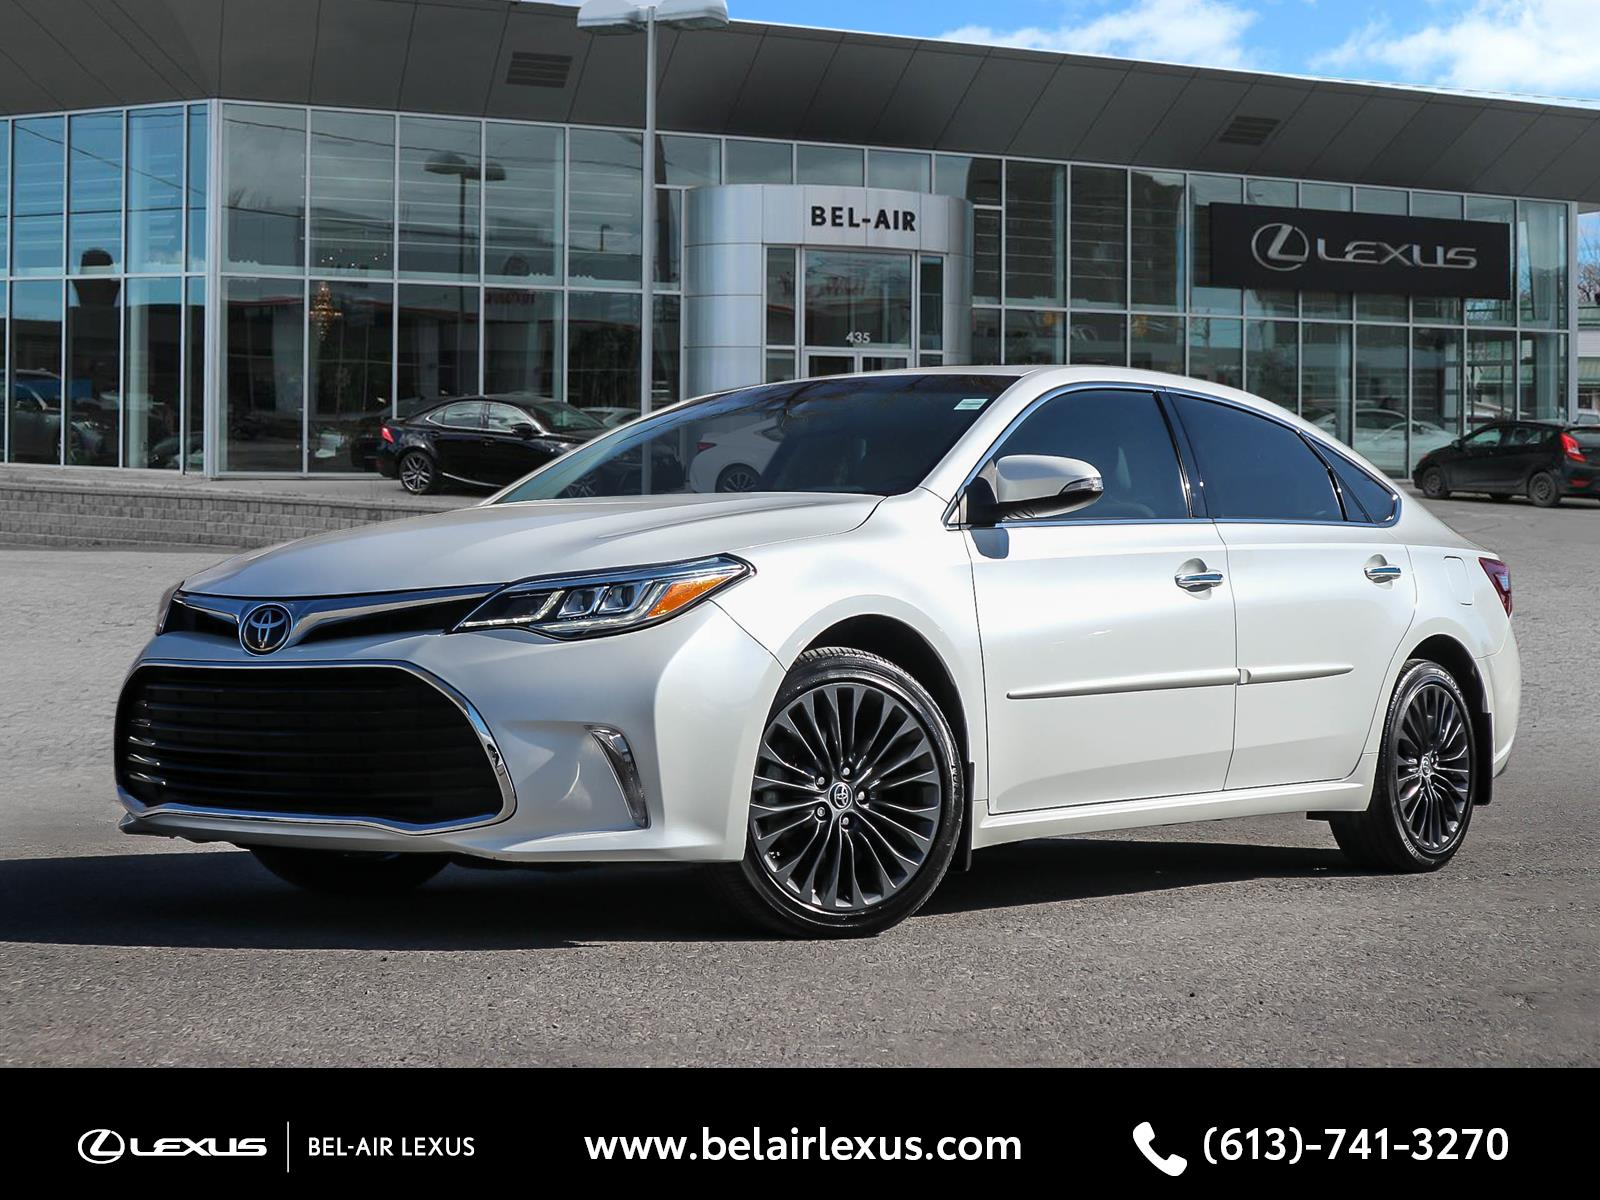 2018 Toyota Avalon at Bel-Air Lexus